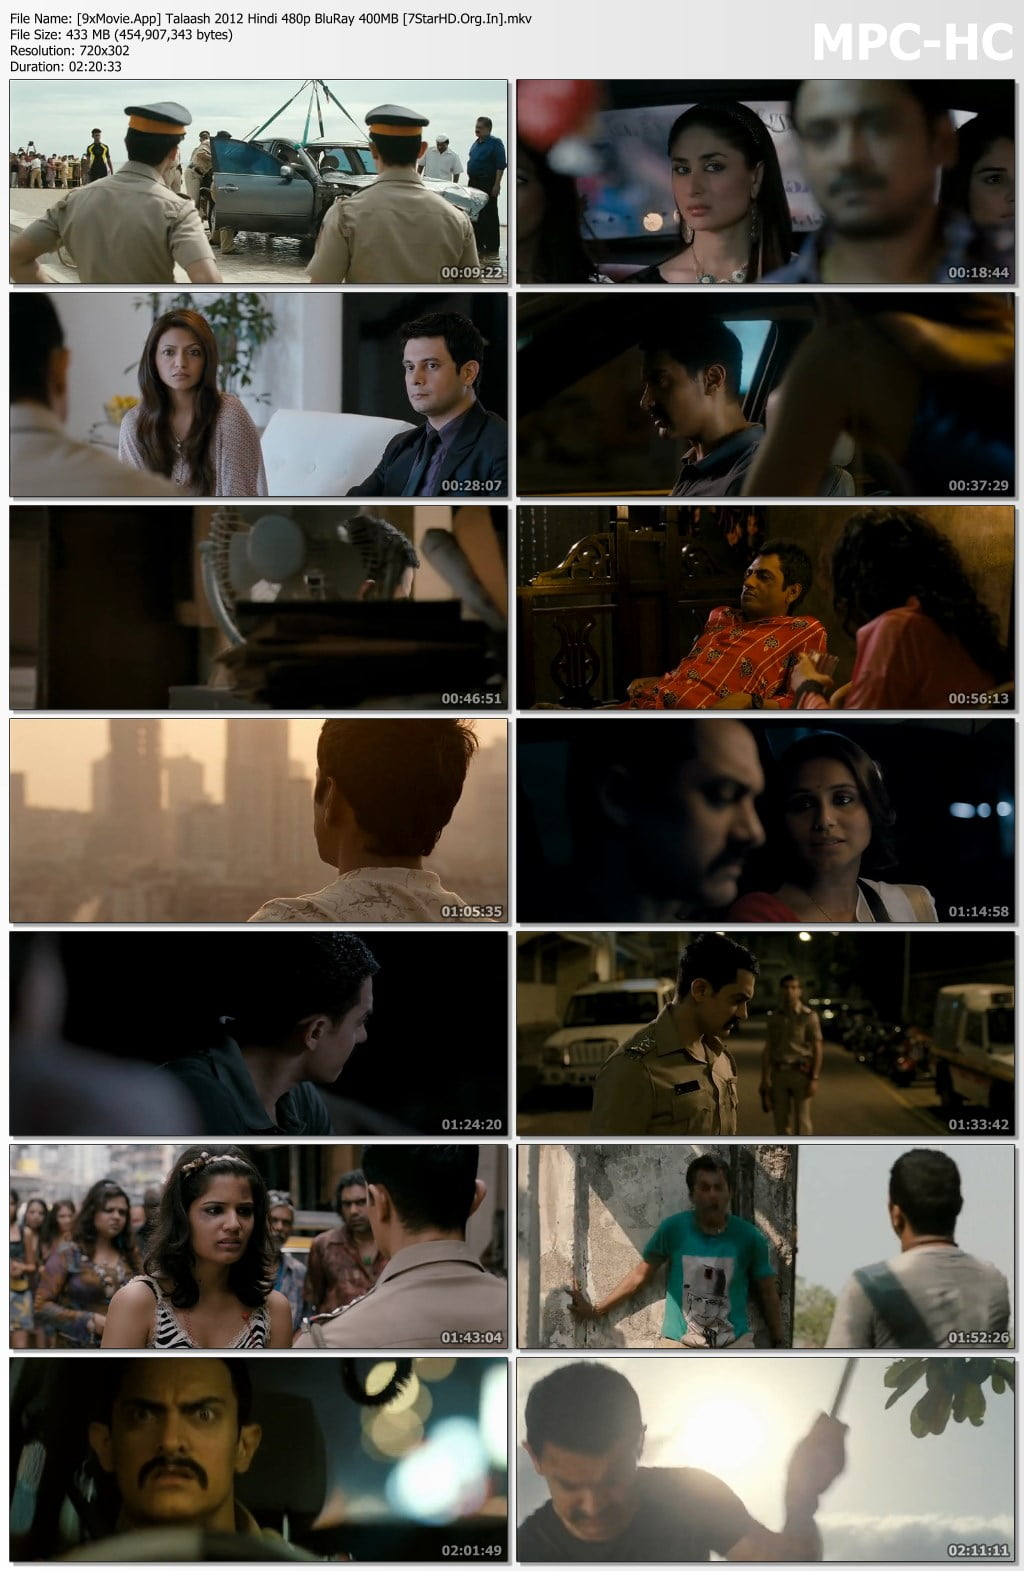 Talaash 2012 Hindi 480p BluRay x264 400MB